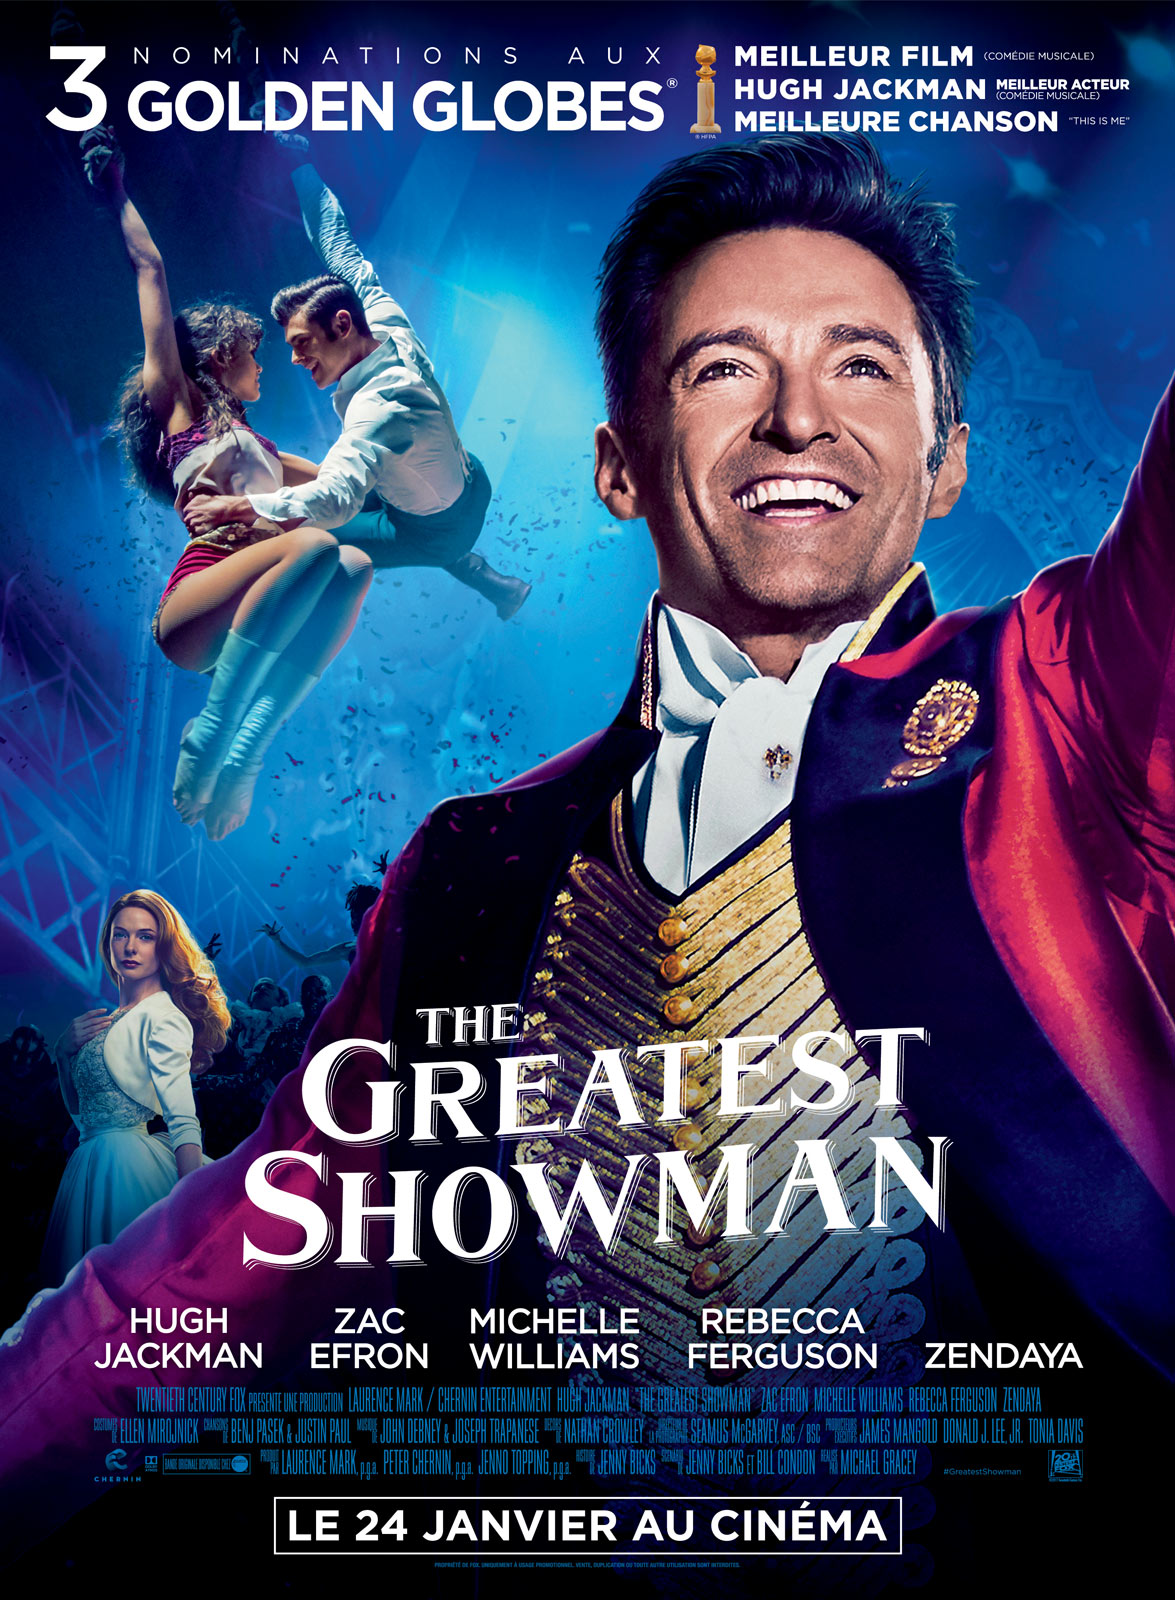 The Greatest Showman Qualité HDRip | VOSTFR